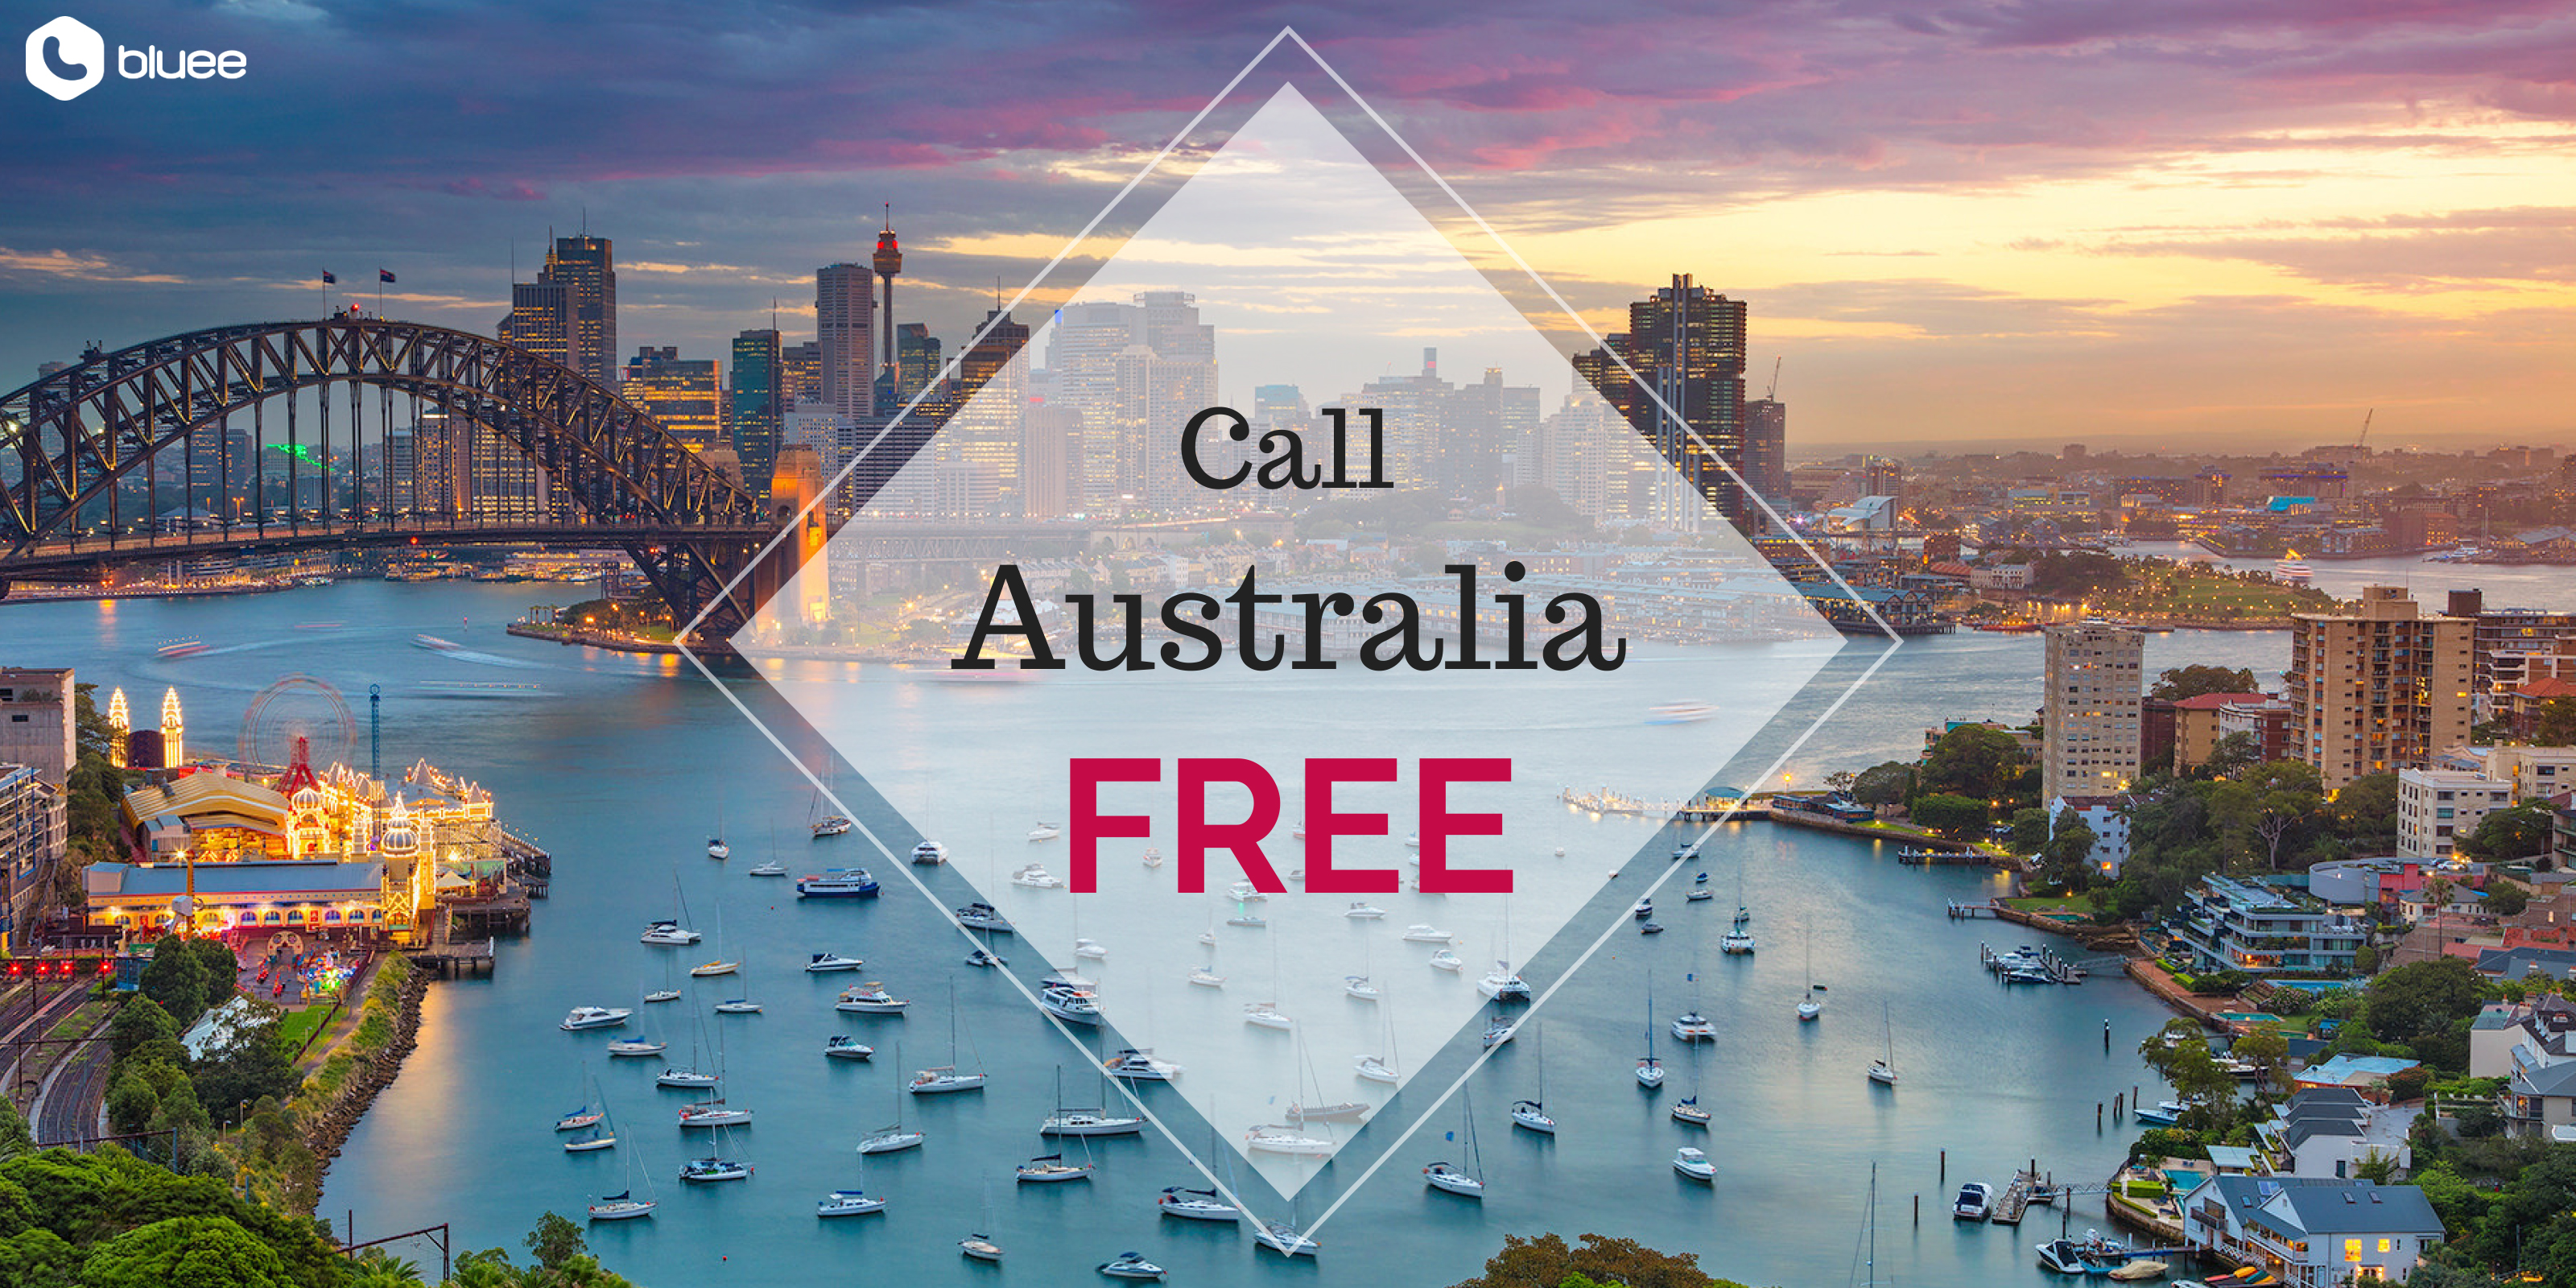 Free Thursday: Call Australia For FREE!